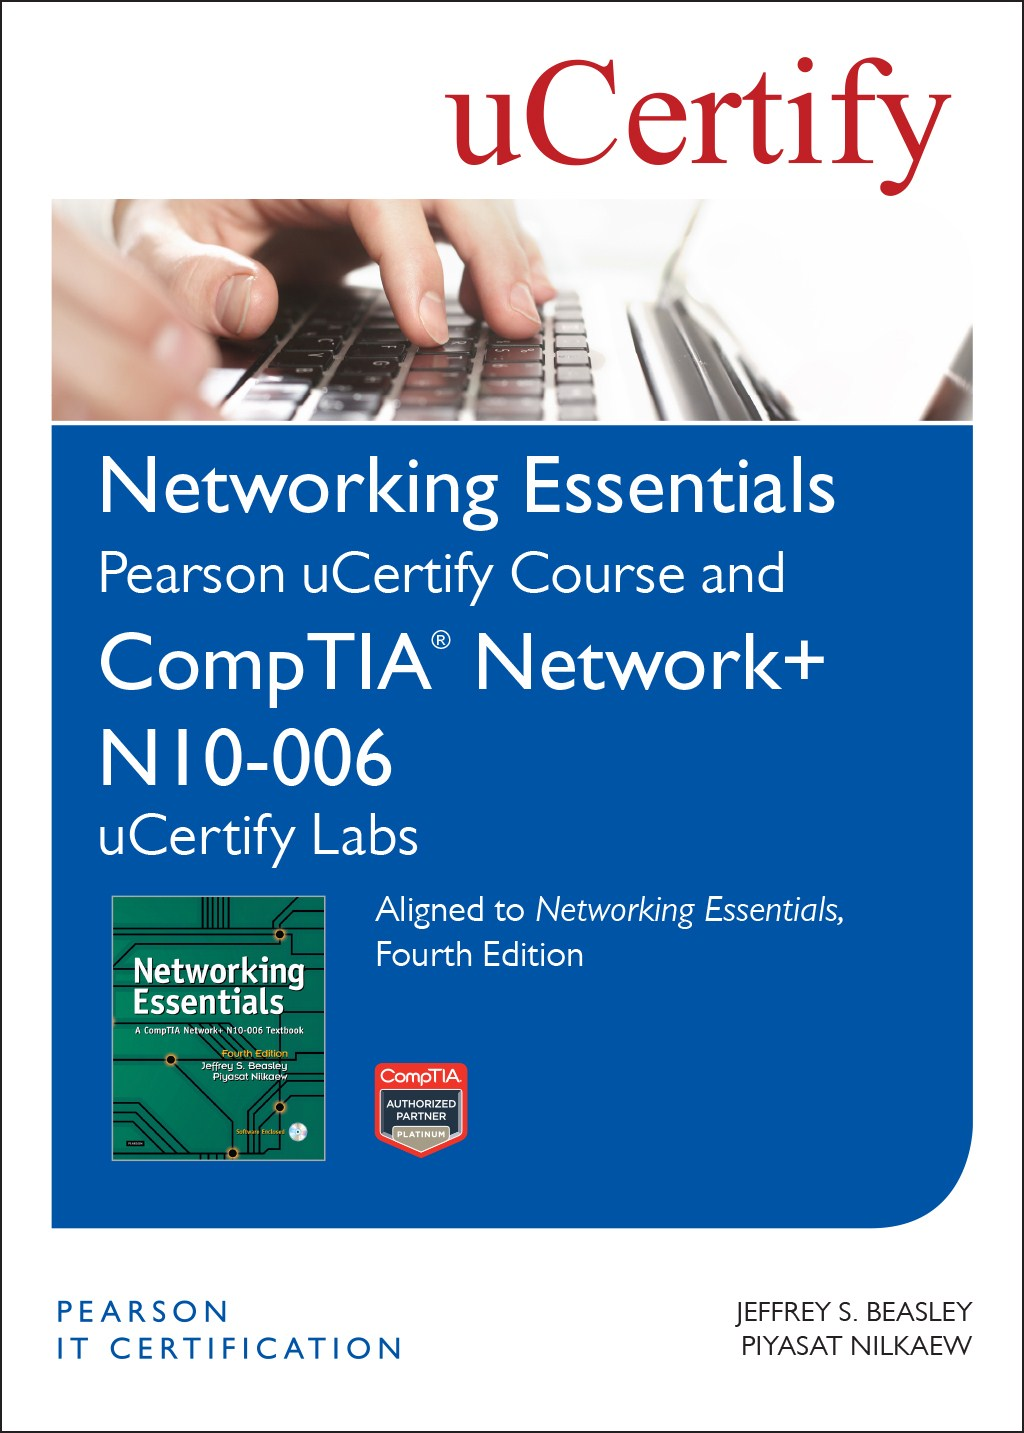 Networking essentials fourth edition pearson ucertify course and comptia network n10 006 ucertify labs